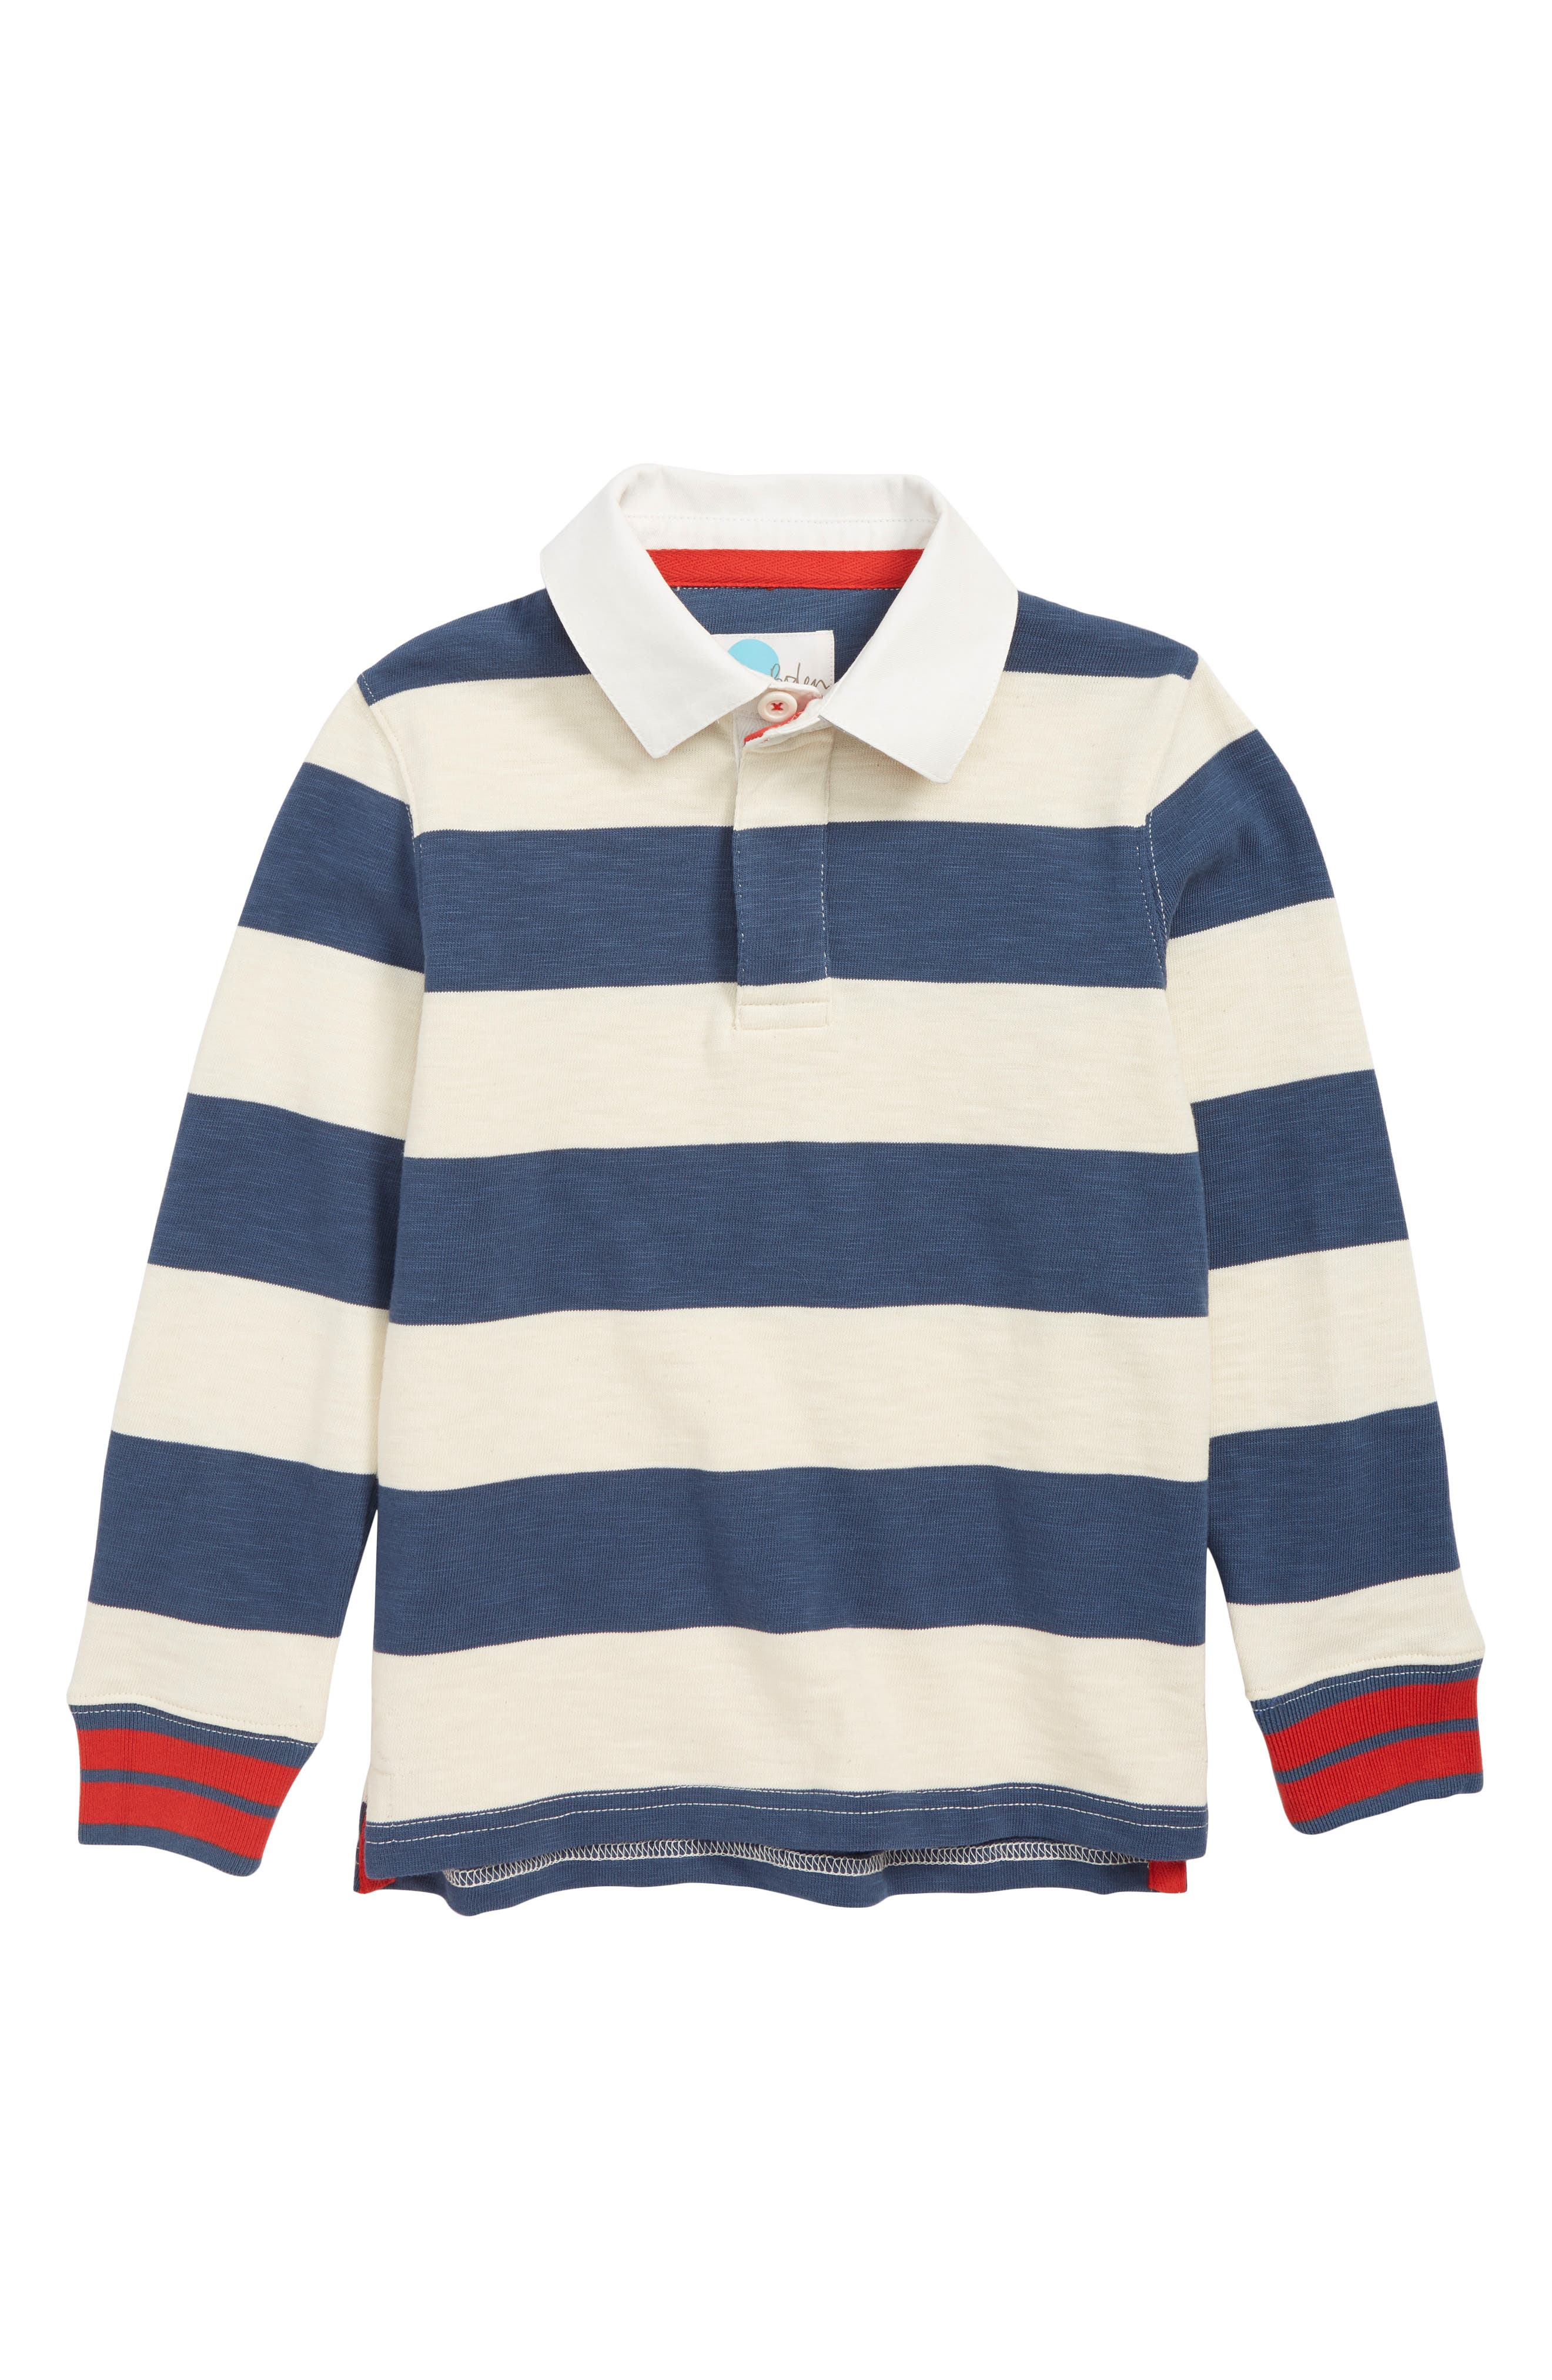 Rugby Polo Shirt,                             Main thumbnail 1, color,                             250